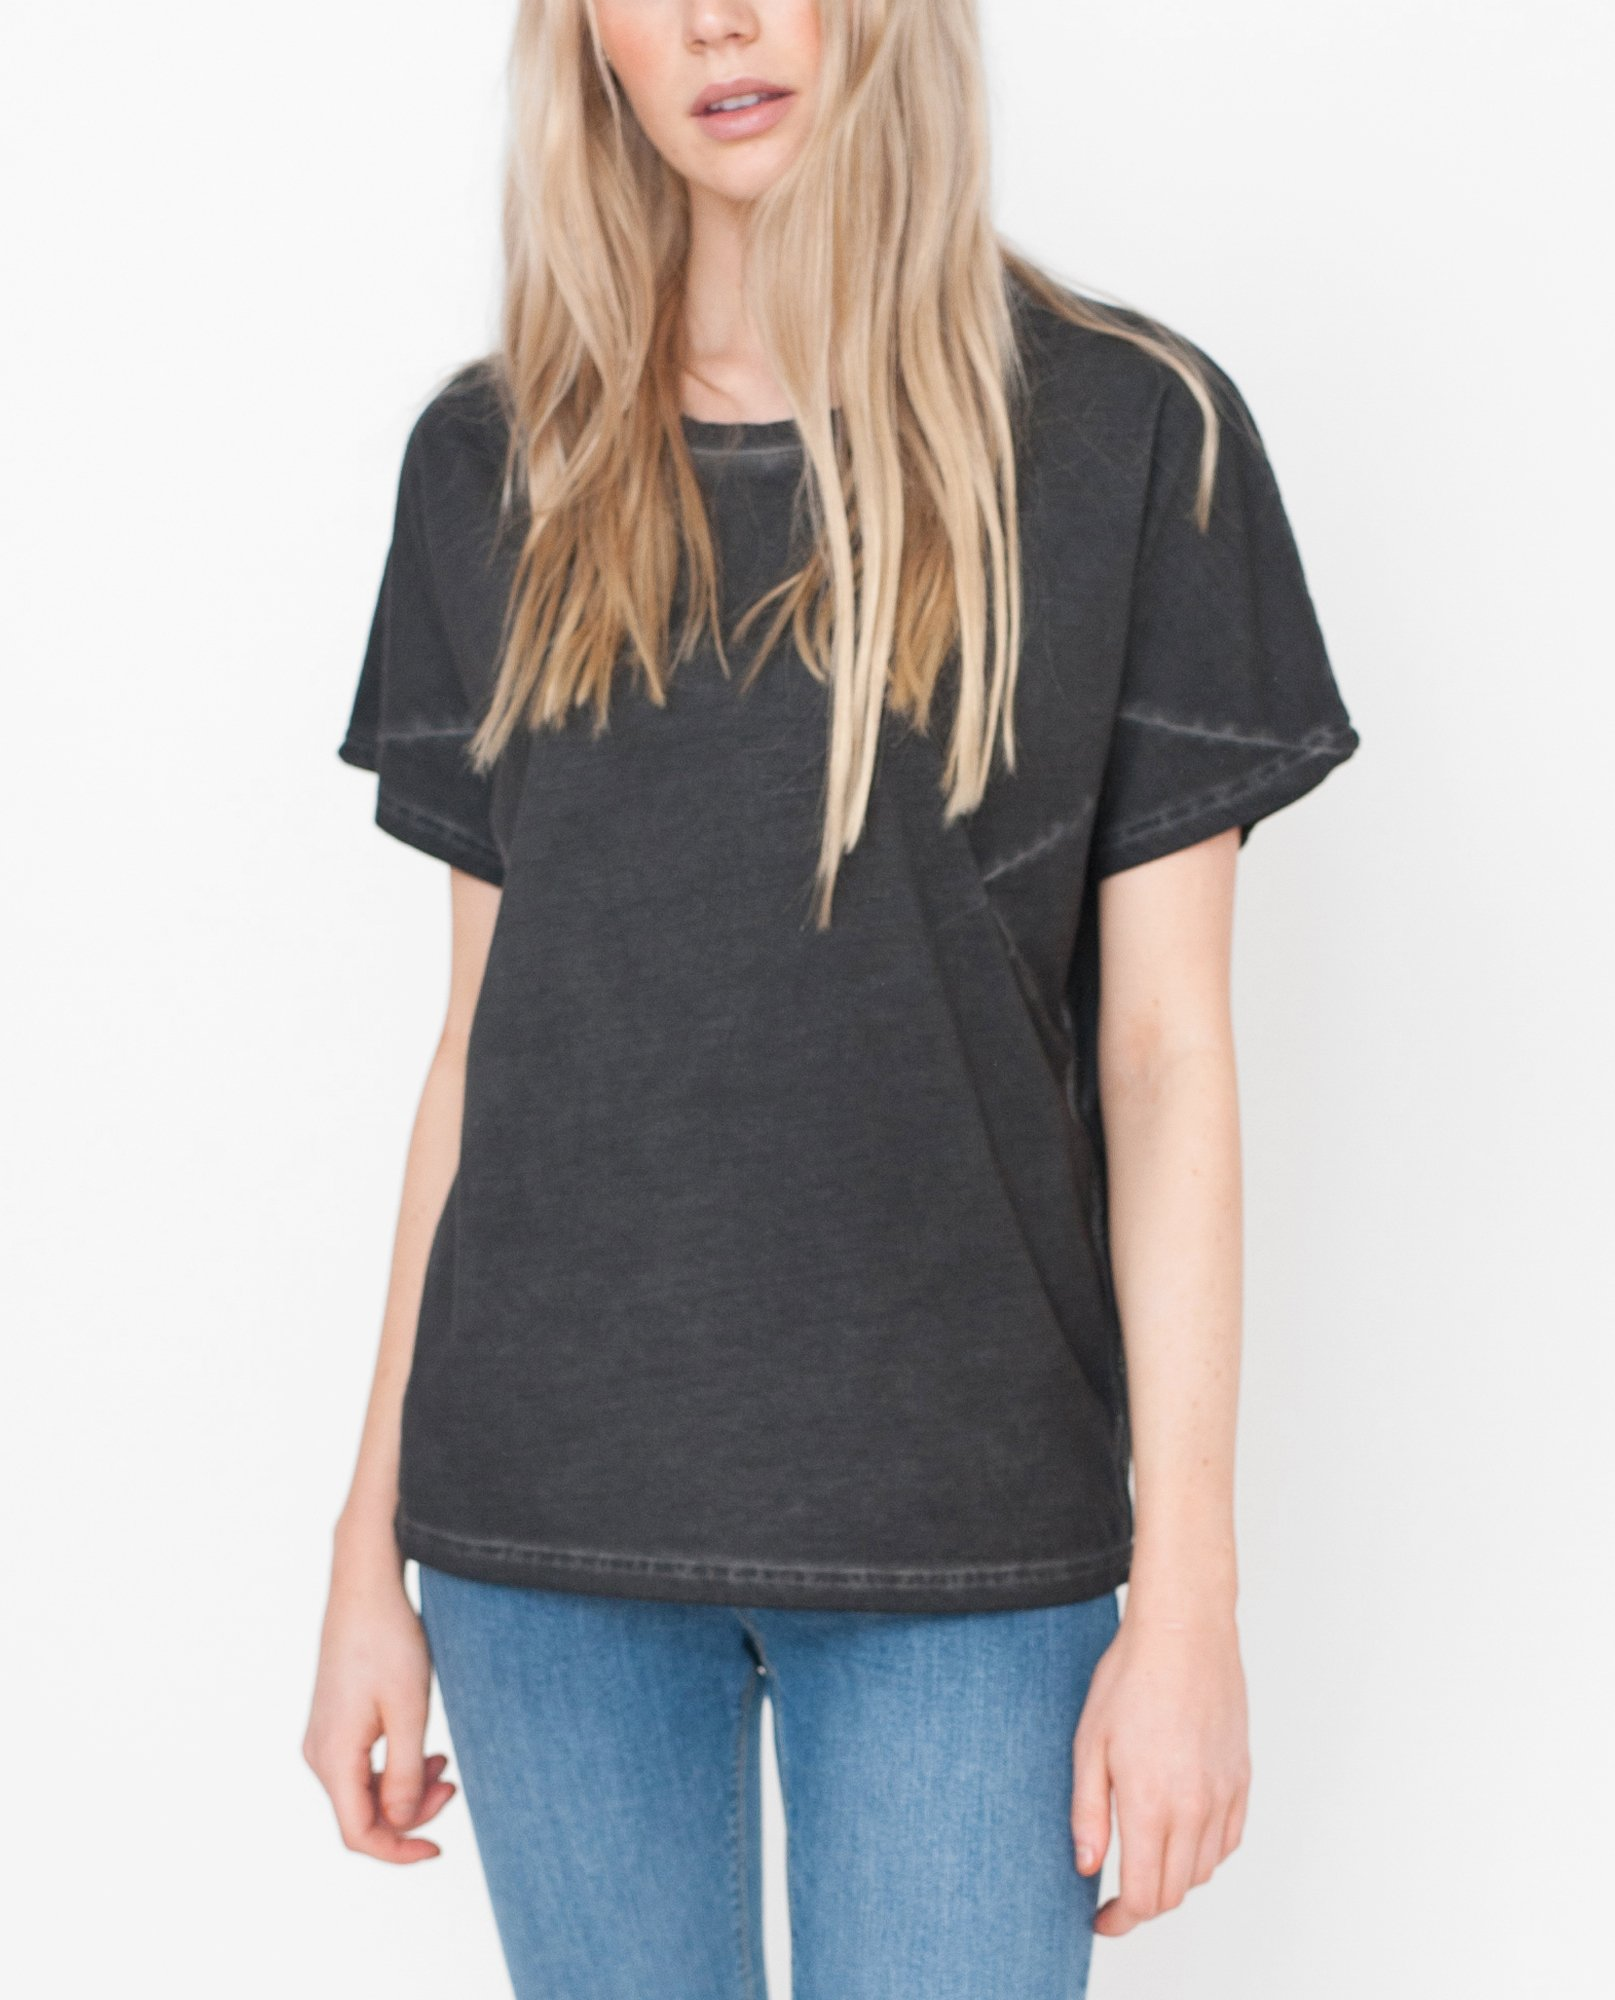 COURTNEY Organic Cotton Top from Beaumont Organic